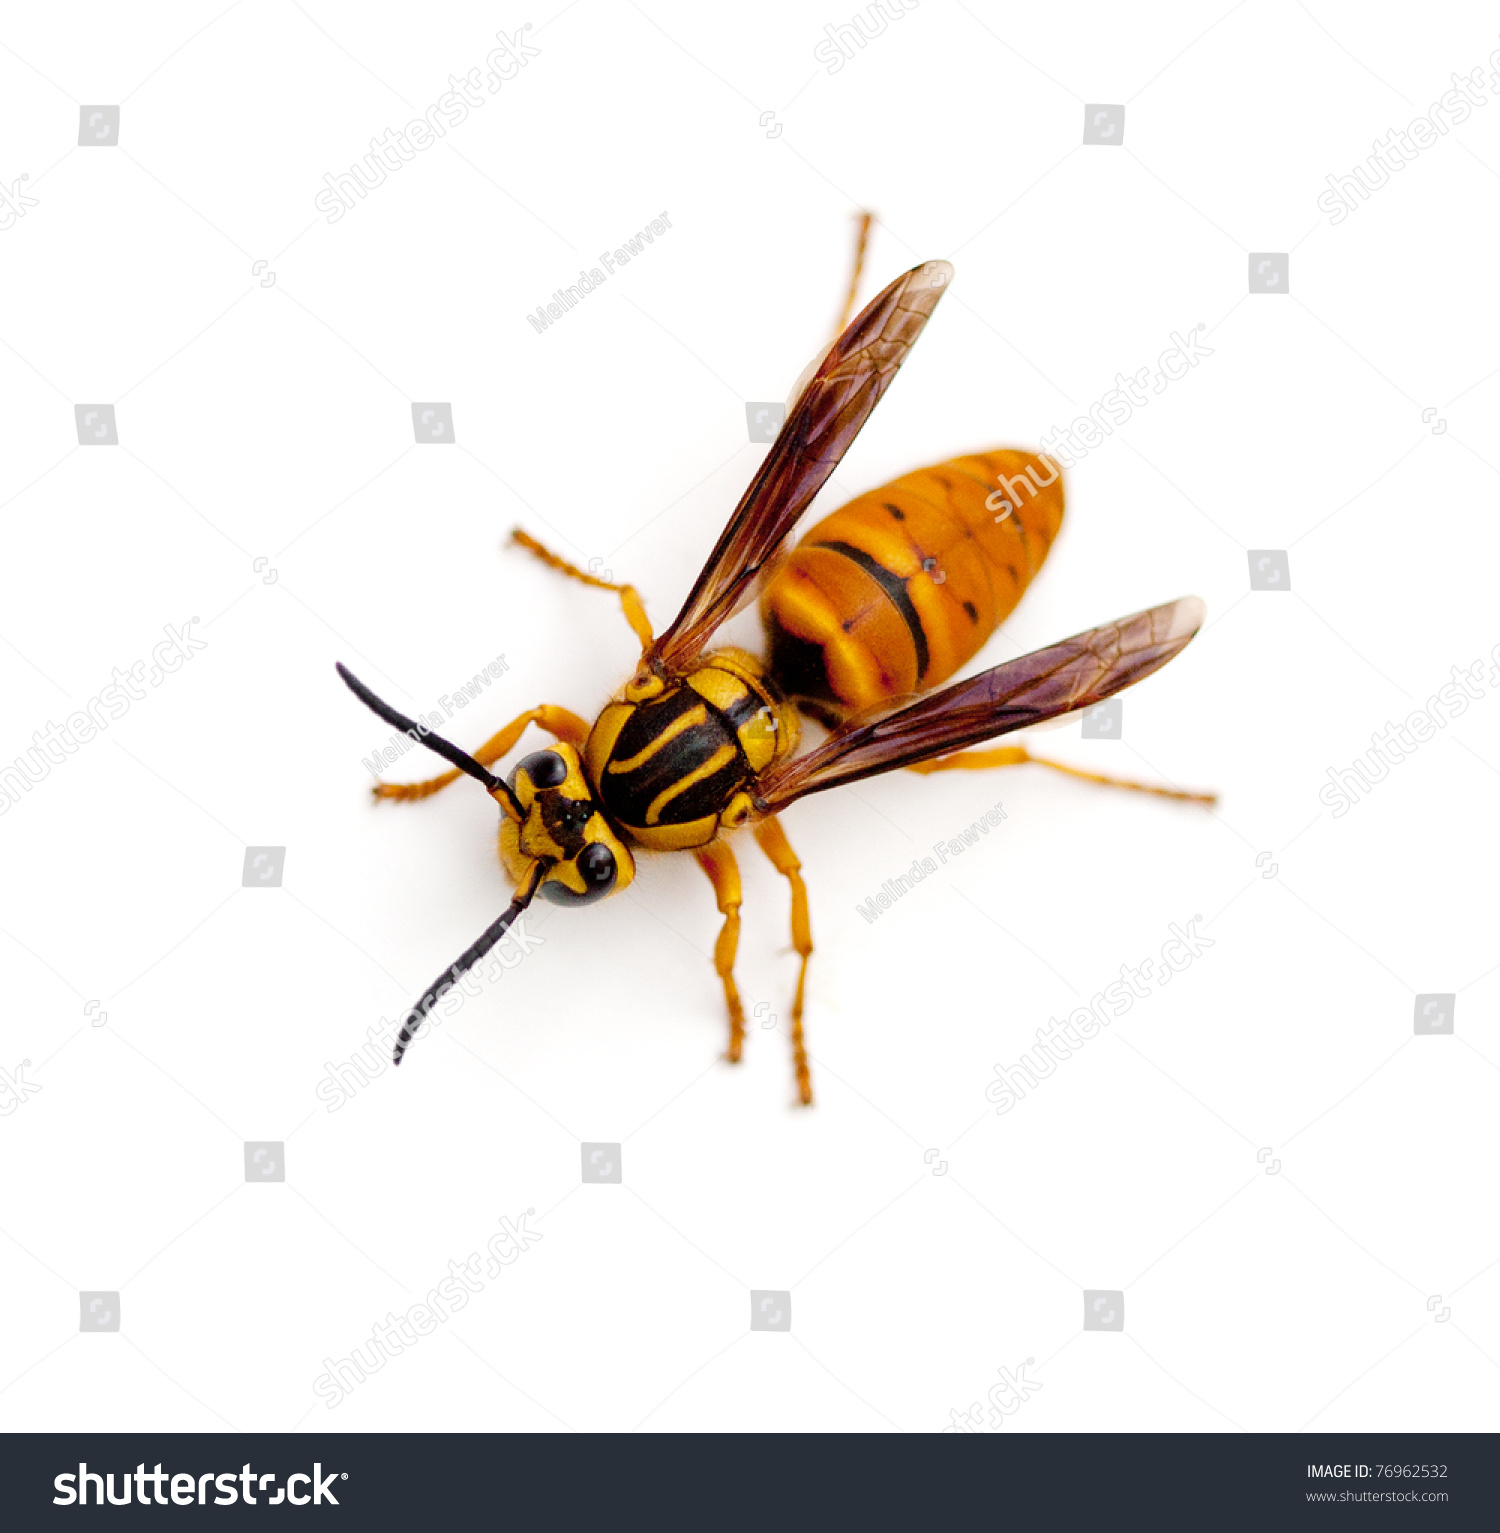 how to tell a yellow jacket from a wasp